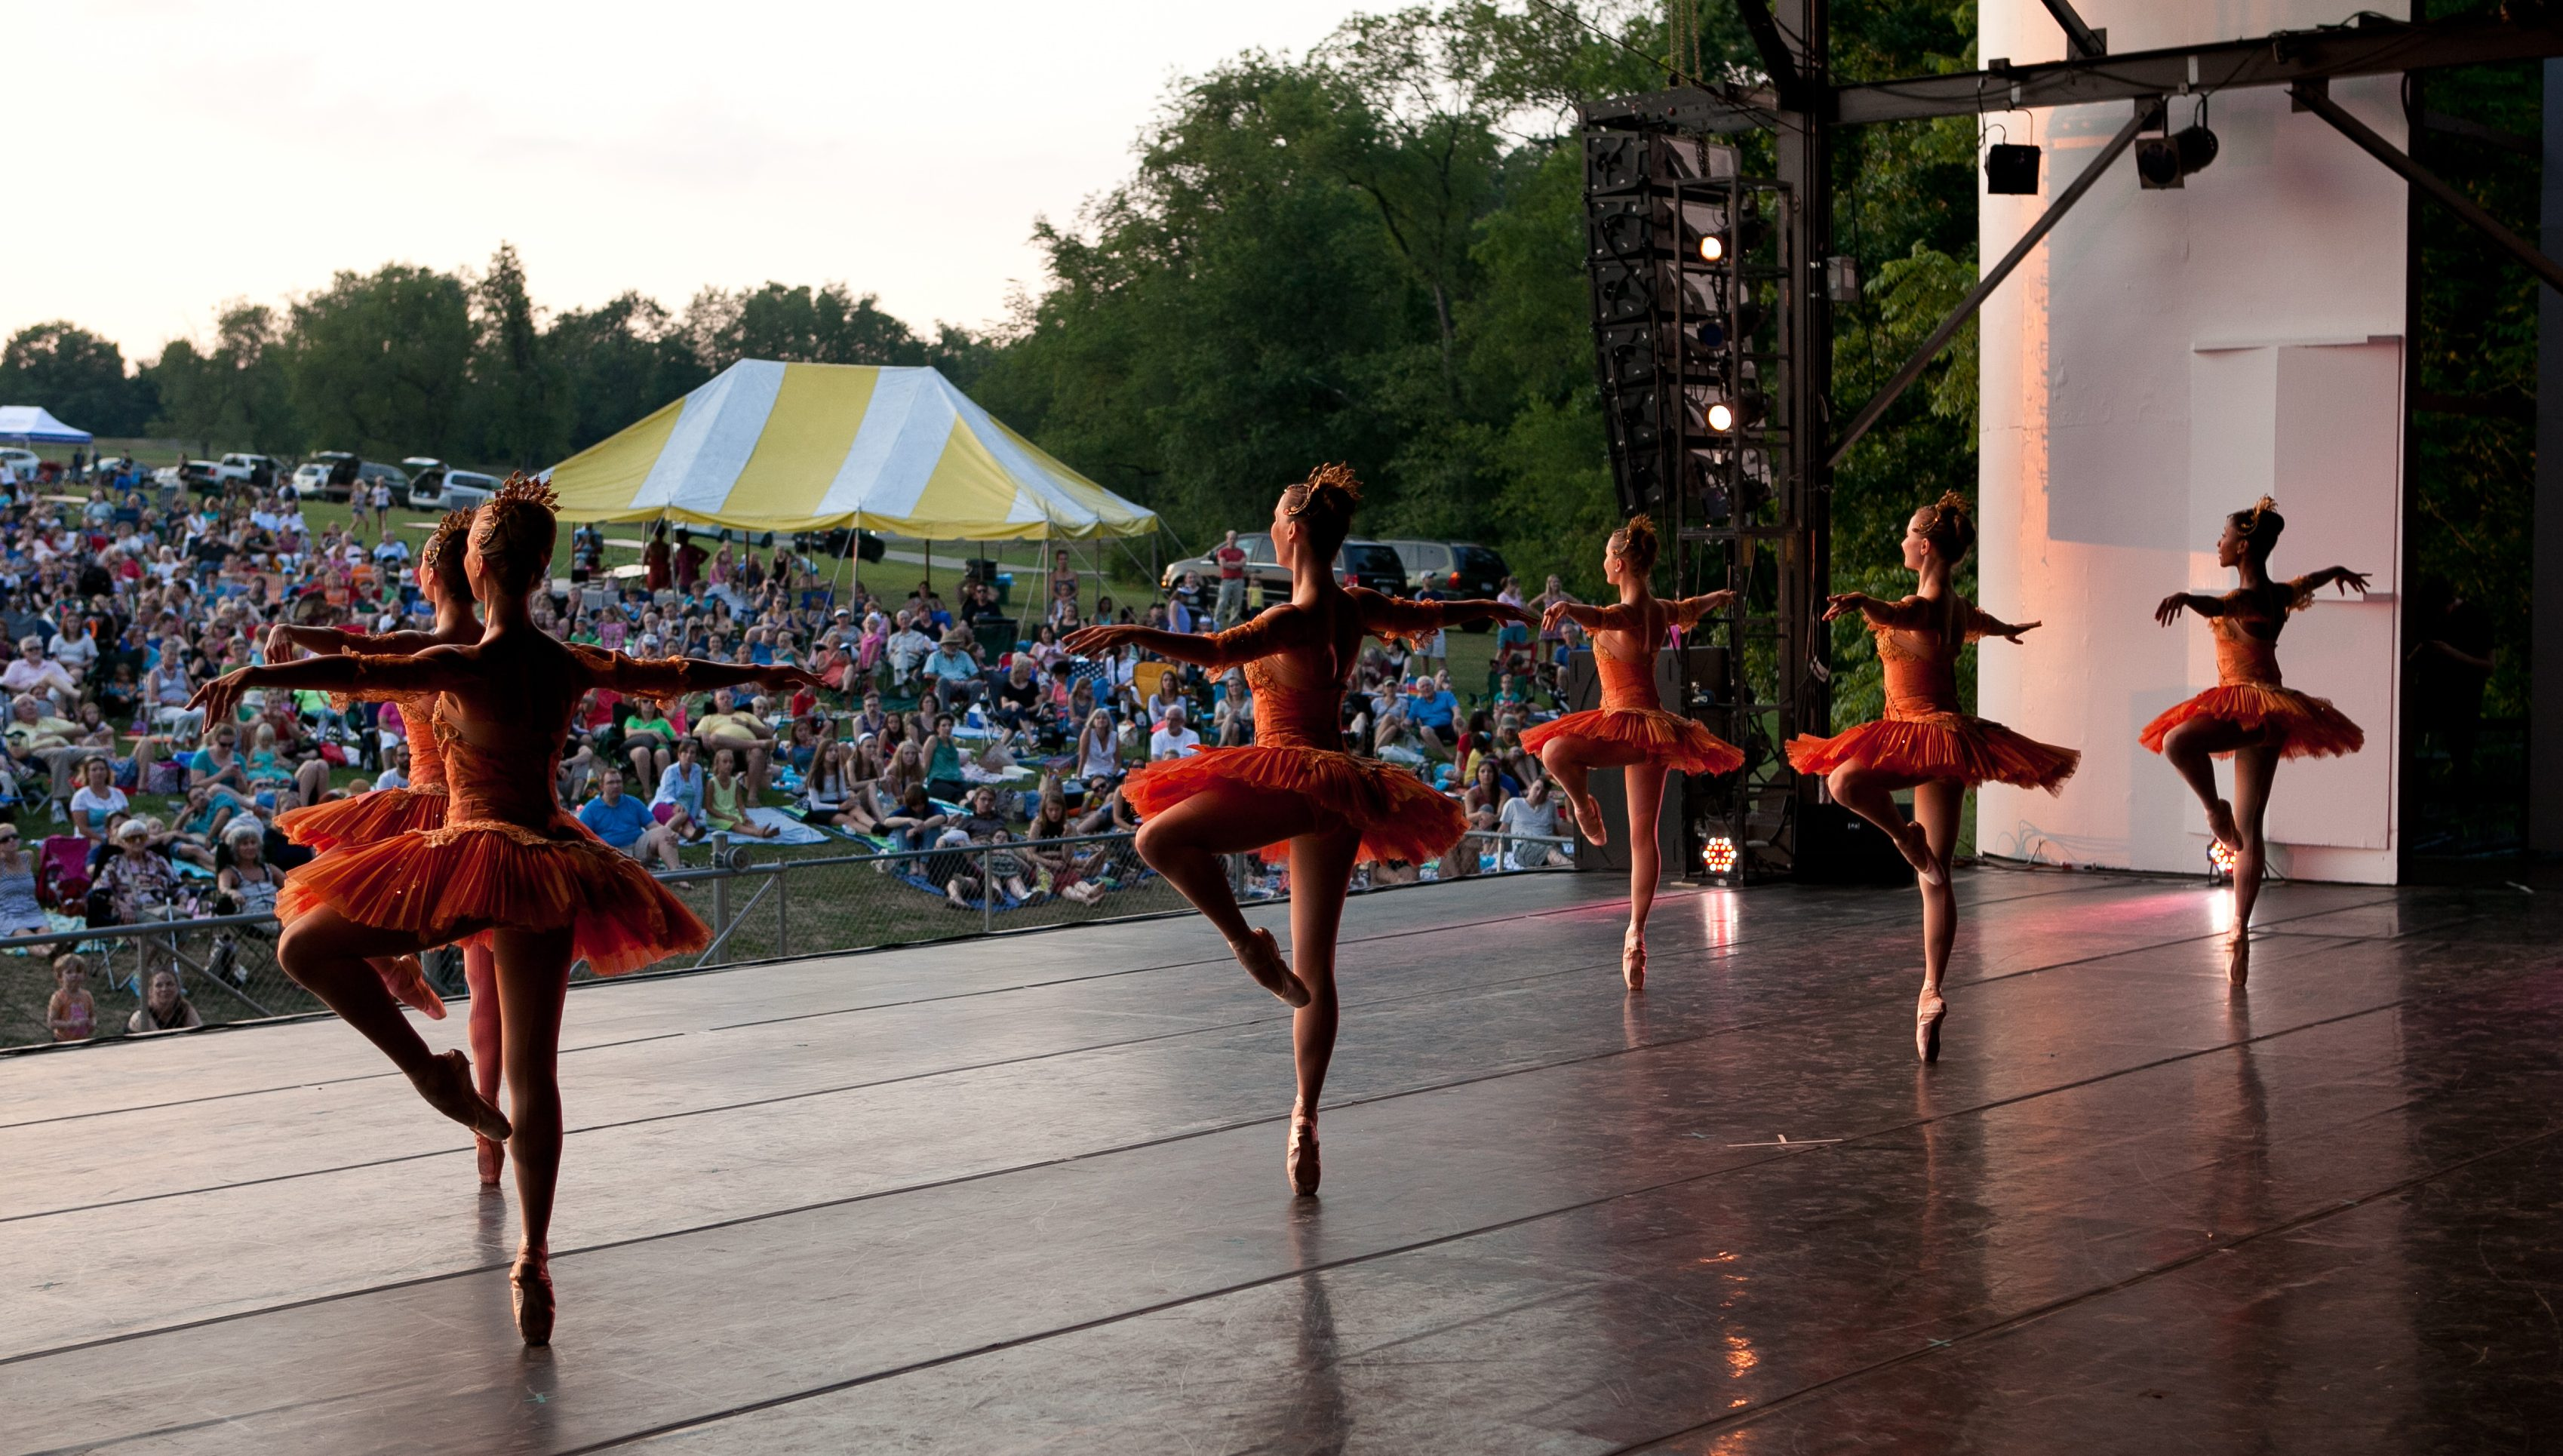 Ballet is seldom seen outdoors; the PBT free show at Hartwood Acres creates a distinctive experience.